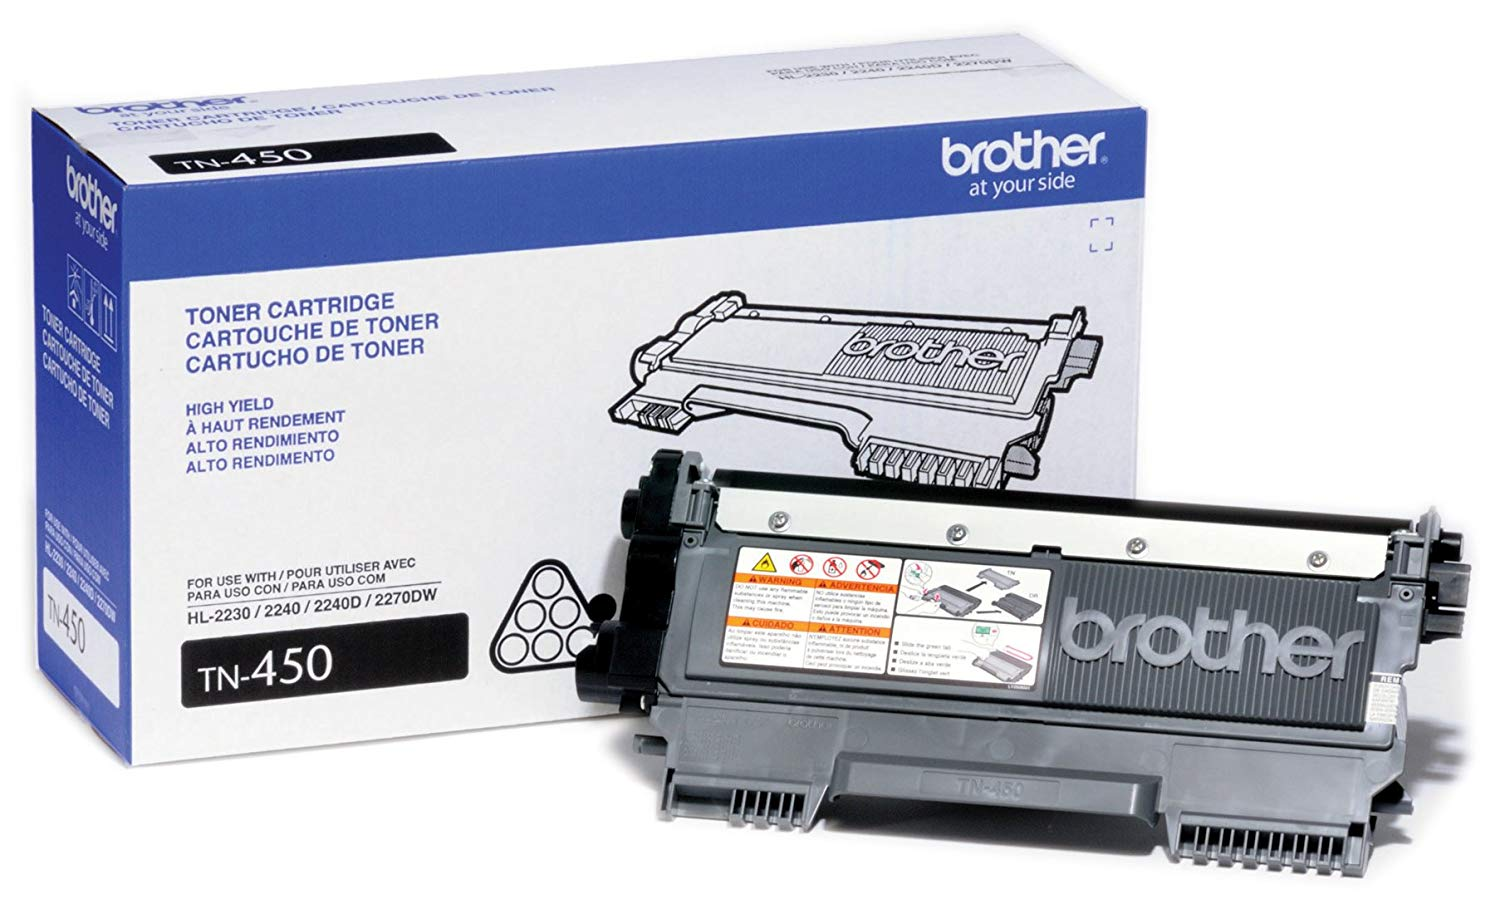 Toner Original BROTHER TN450, TN-450 | DCP7065DN, HL2240, HL2270DW, MFC7360N, MFC7860DW